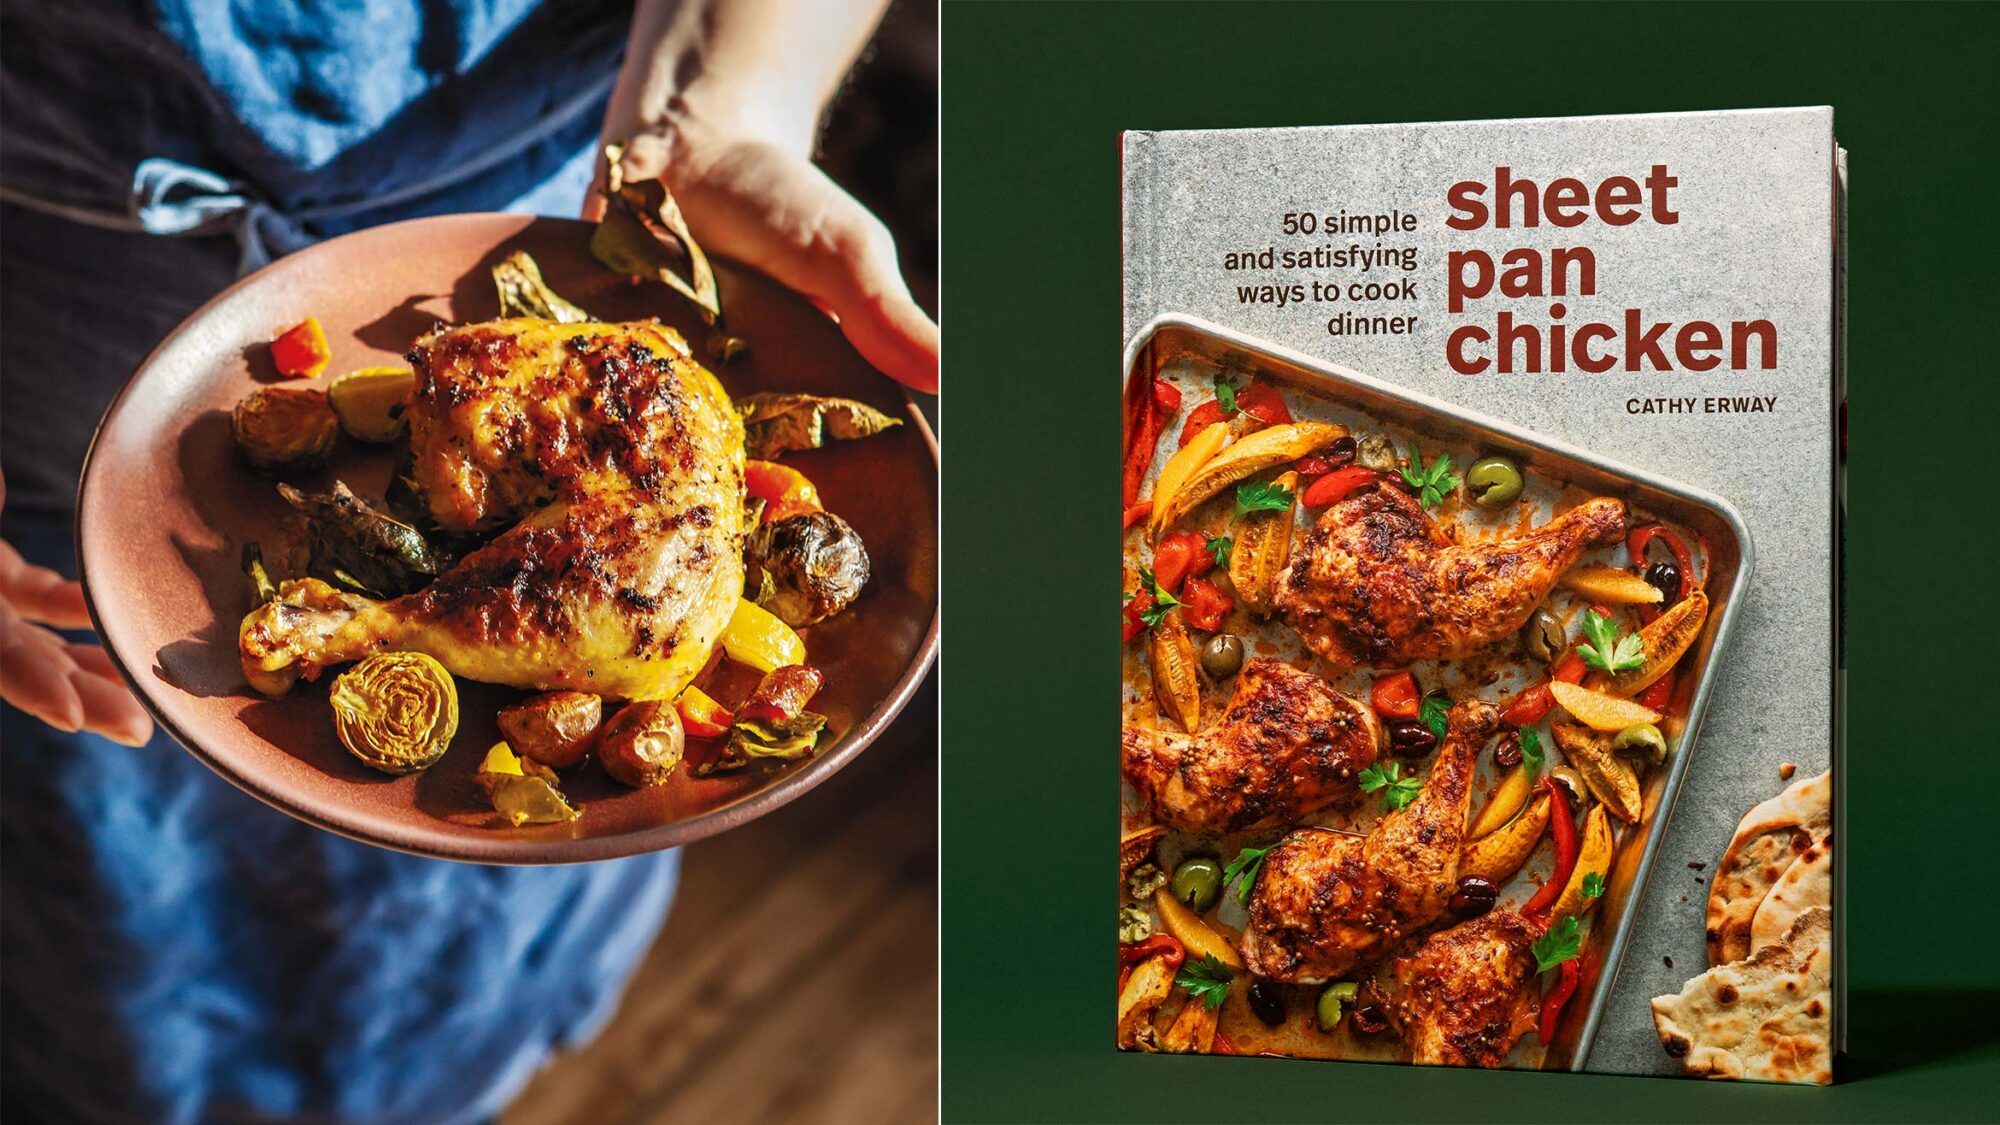 Article-Sheet-Pan-Chicken-Book-Cathy-Erway